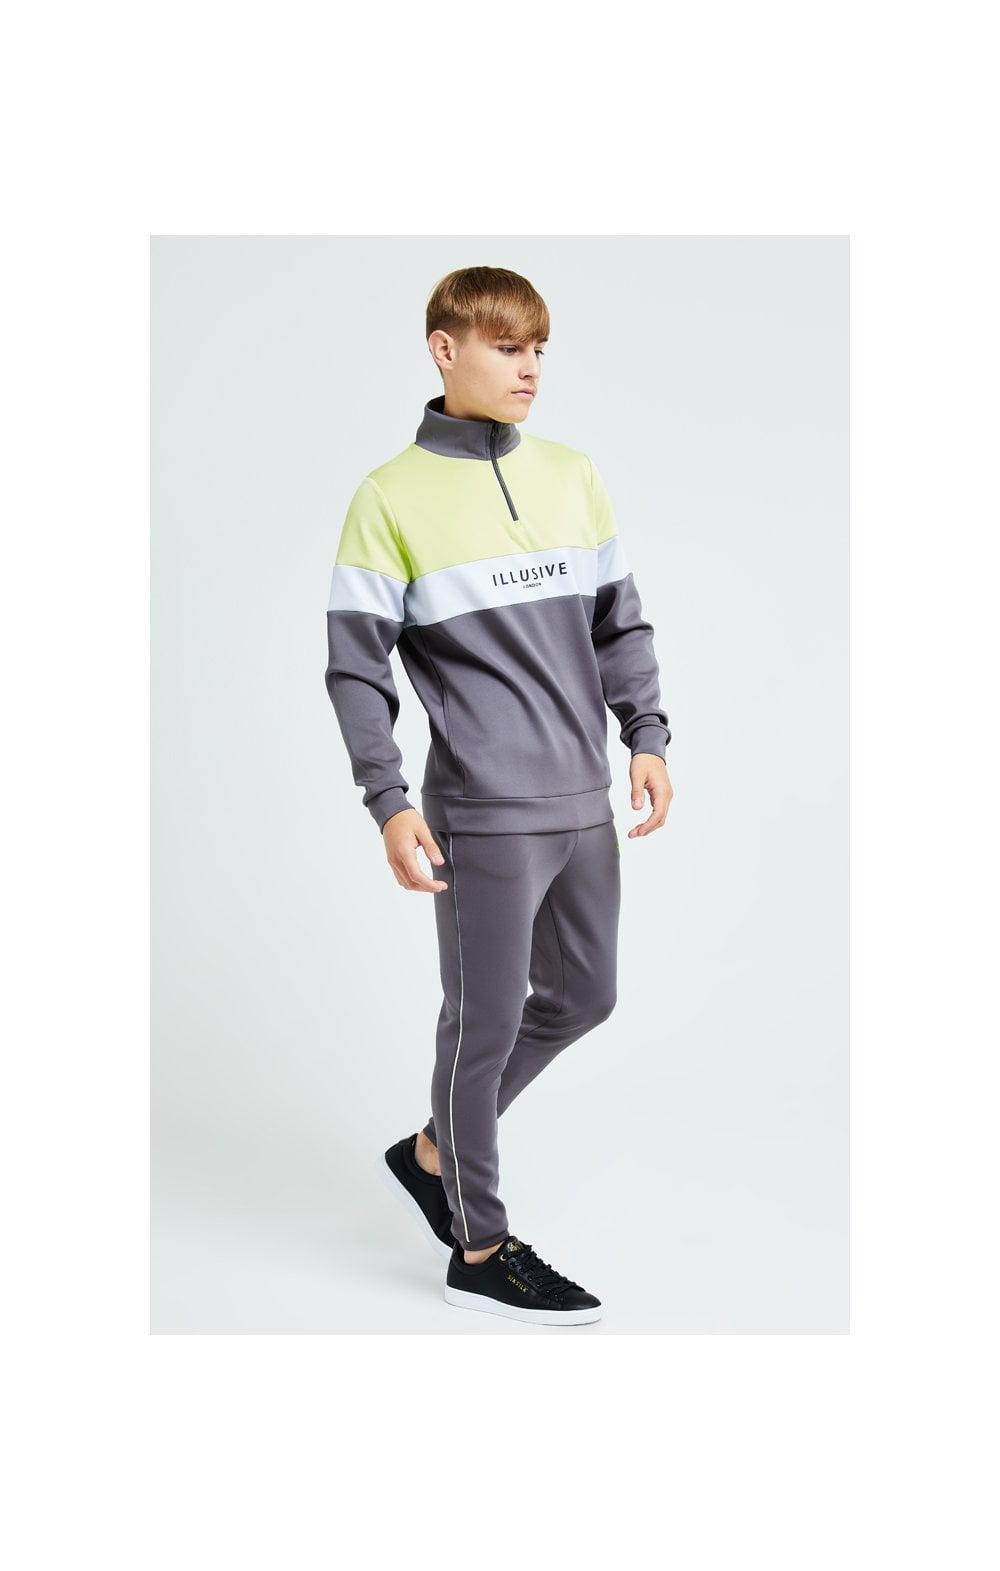 Load image into Gallery viewer, Illusive London Blaze Quarter Zip Hoodie - Dark Grey & Lime (2)